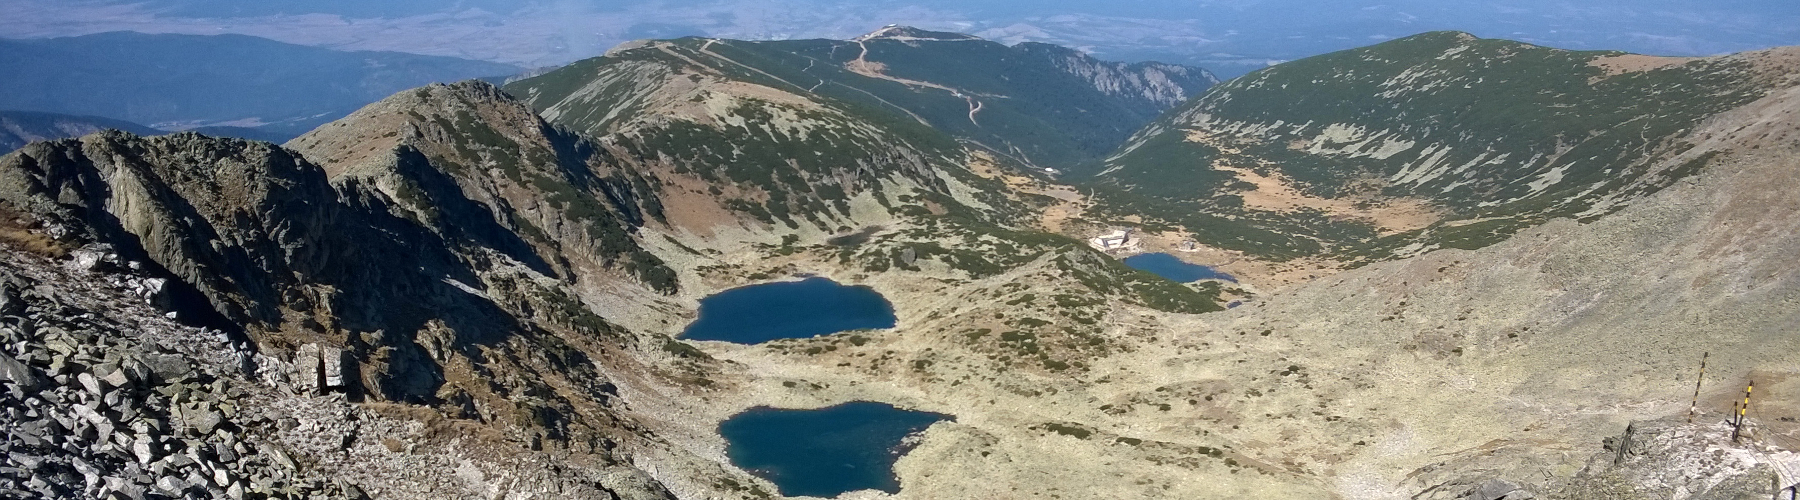 The Musala Lakes, Rila Mountain